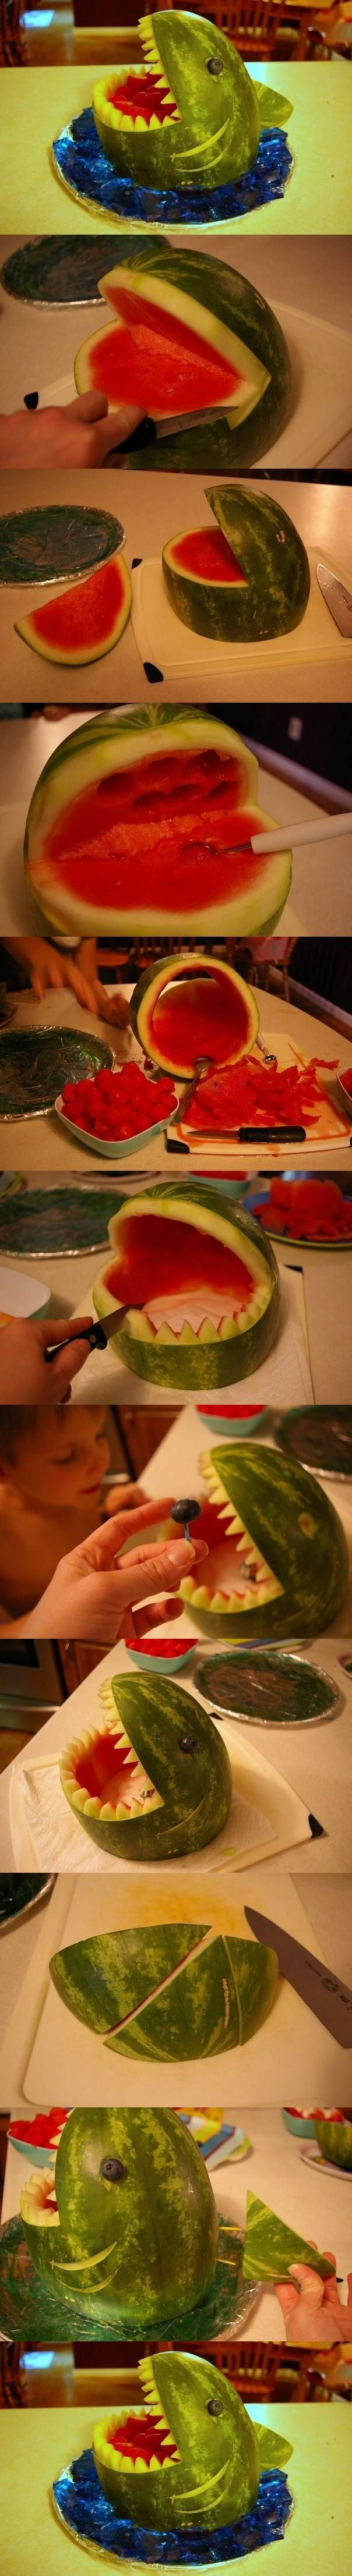 DIY Melancia tubarão Carving Internet Tutorial DIY Watermelon Carving Tubarão Tutorial Internet